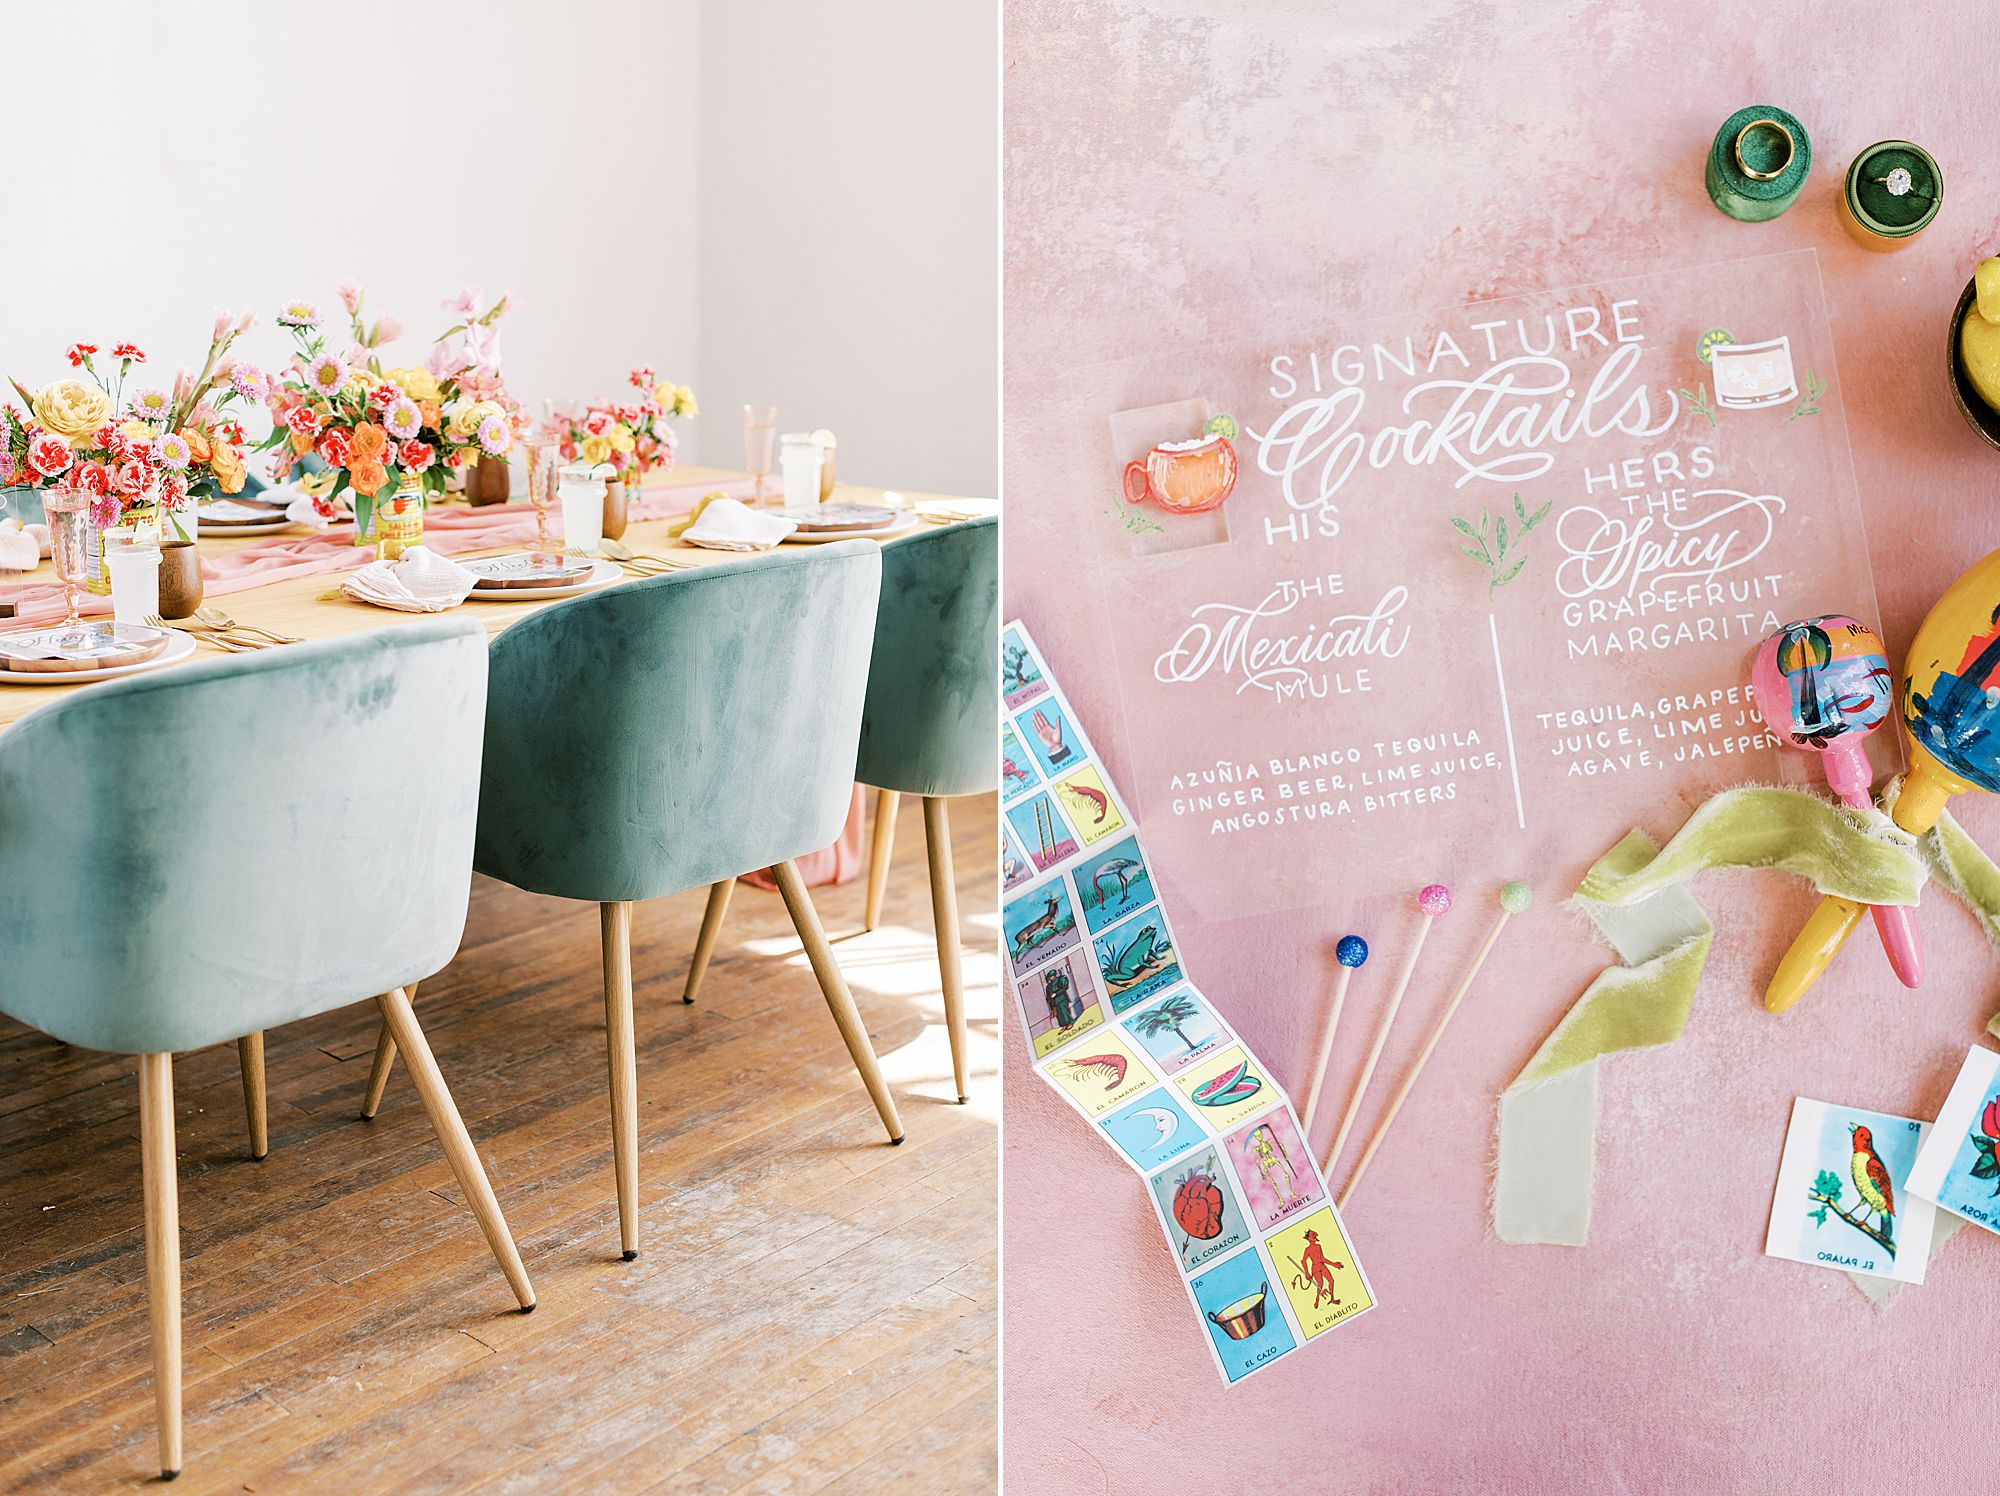 Cinco De Mayo Inspiration for Your FIesta - Party Crush Studio and Ashley Baumgartner_0055.jpg